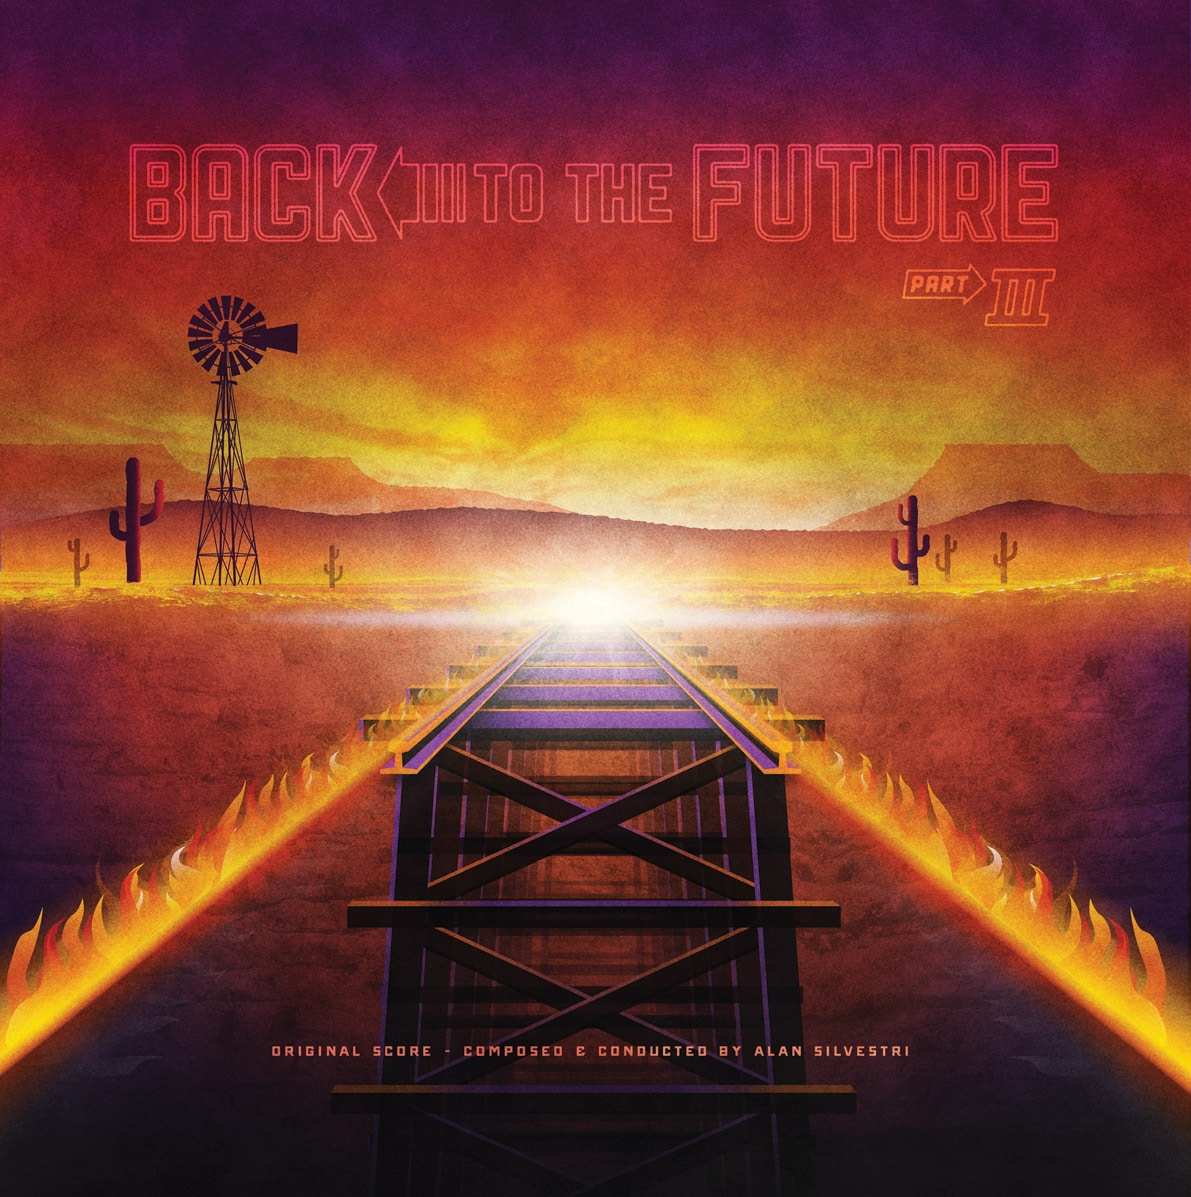 Back to the Future 3 Soundtrack Record Cover by DKNG